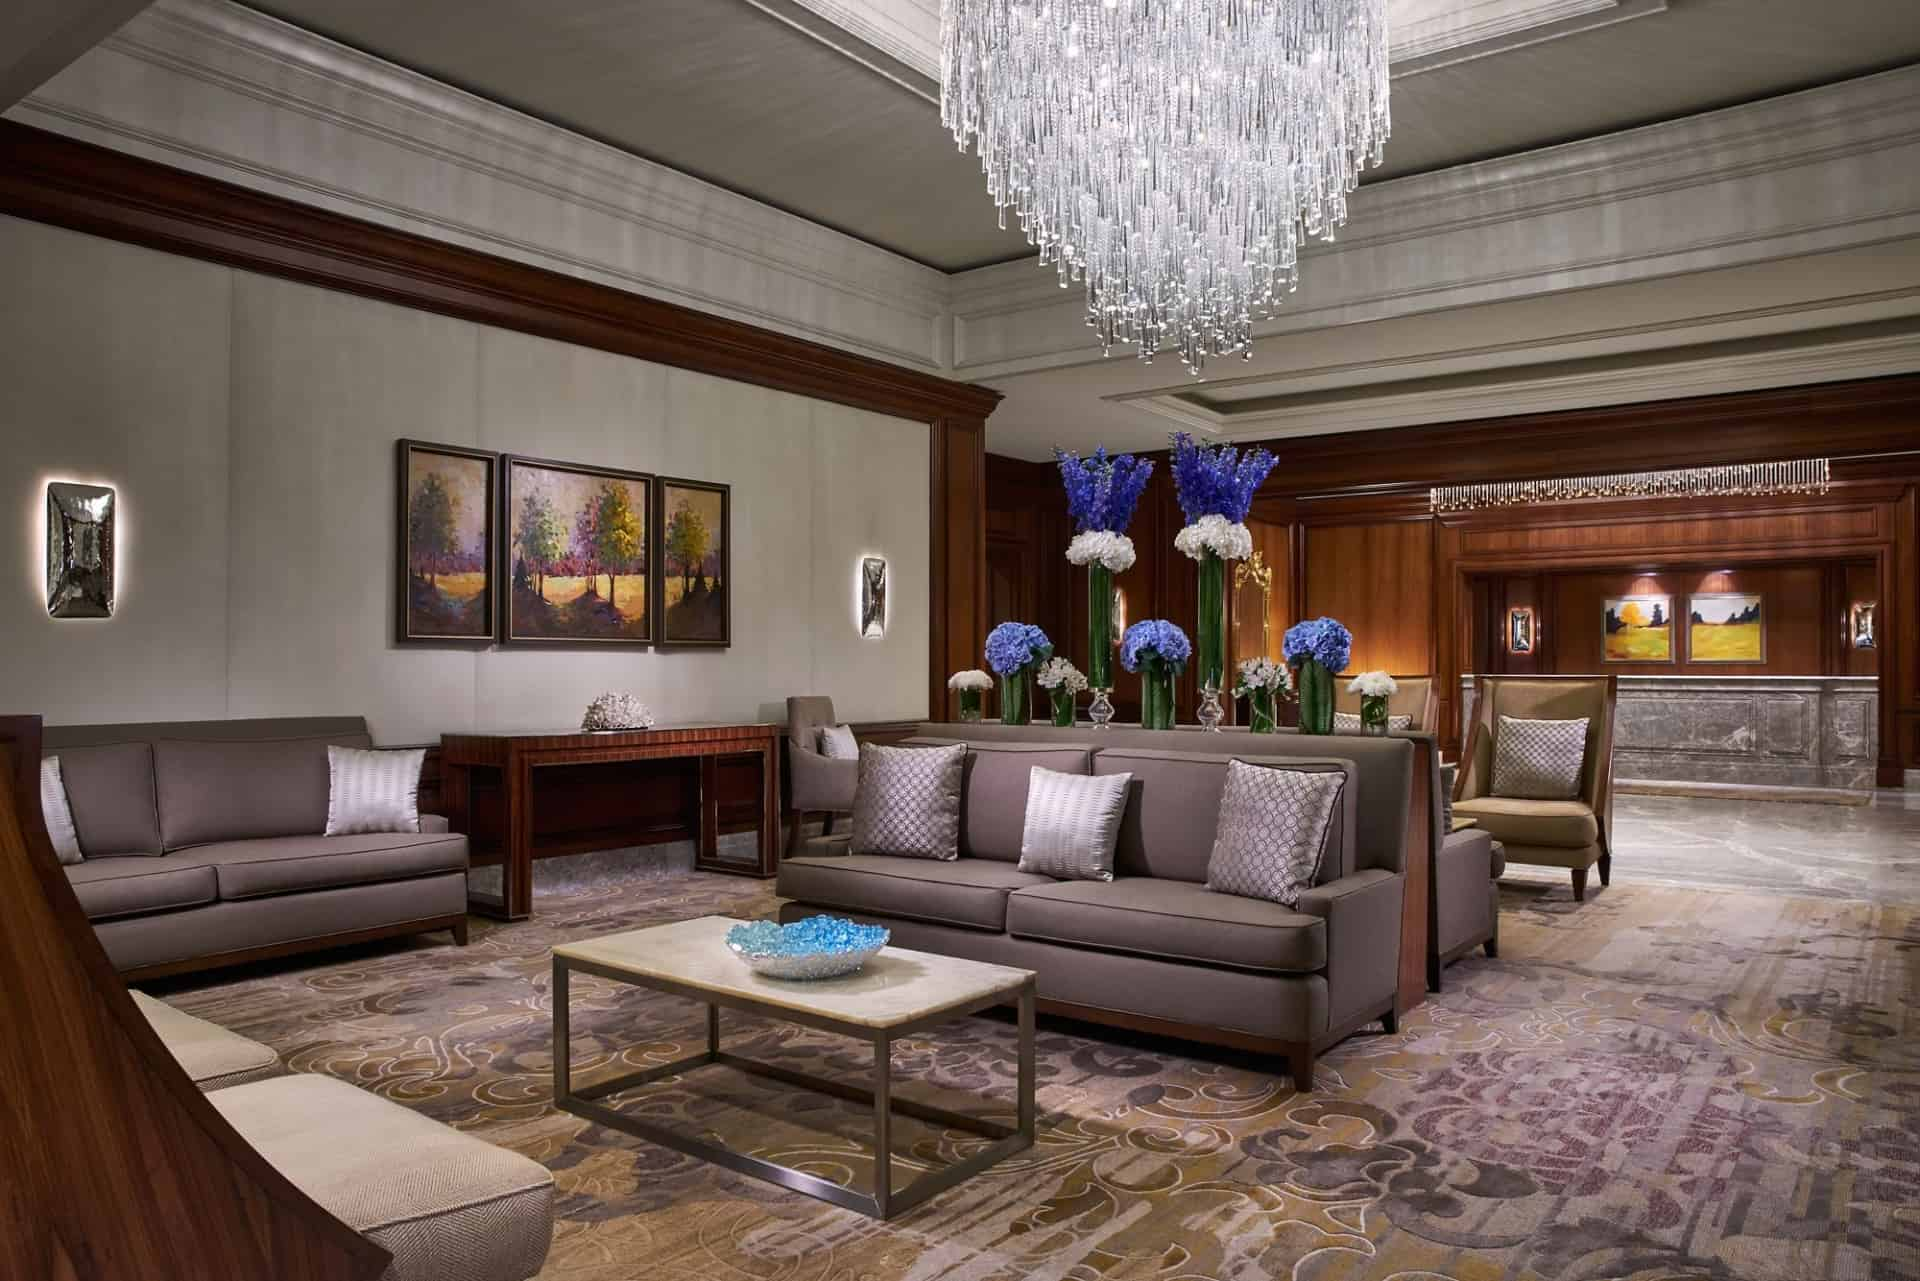 The Ritz-Carlton, Tysons Corner lobby, check-in desk, and lounge area